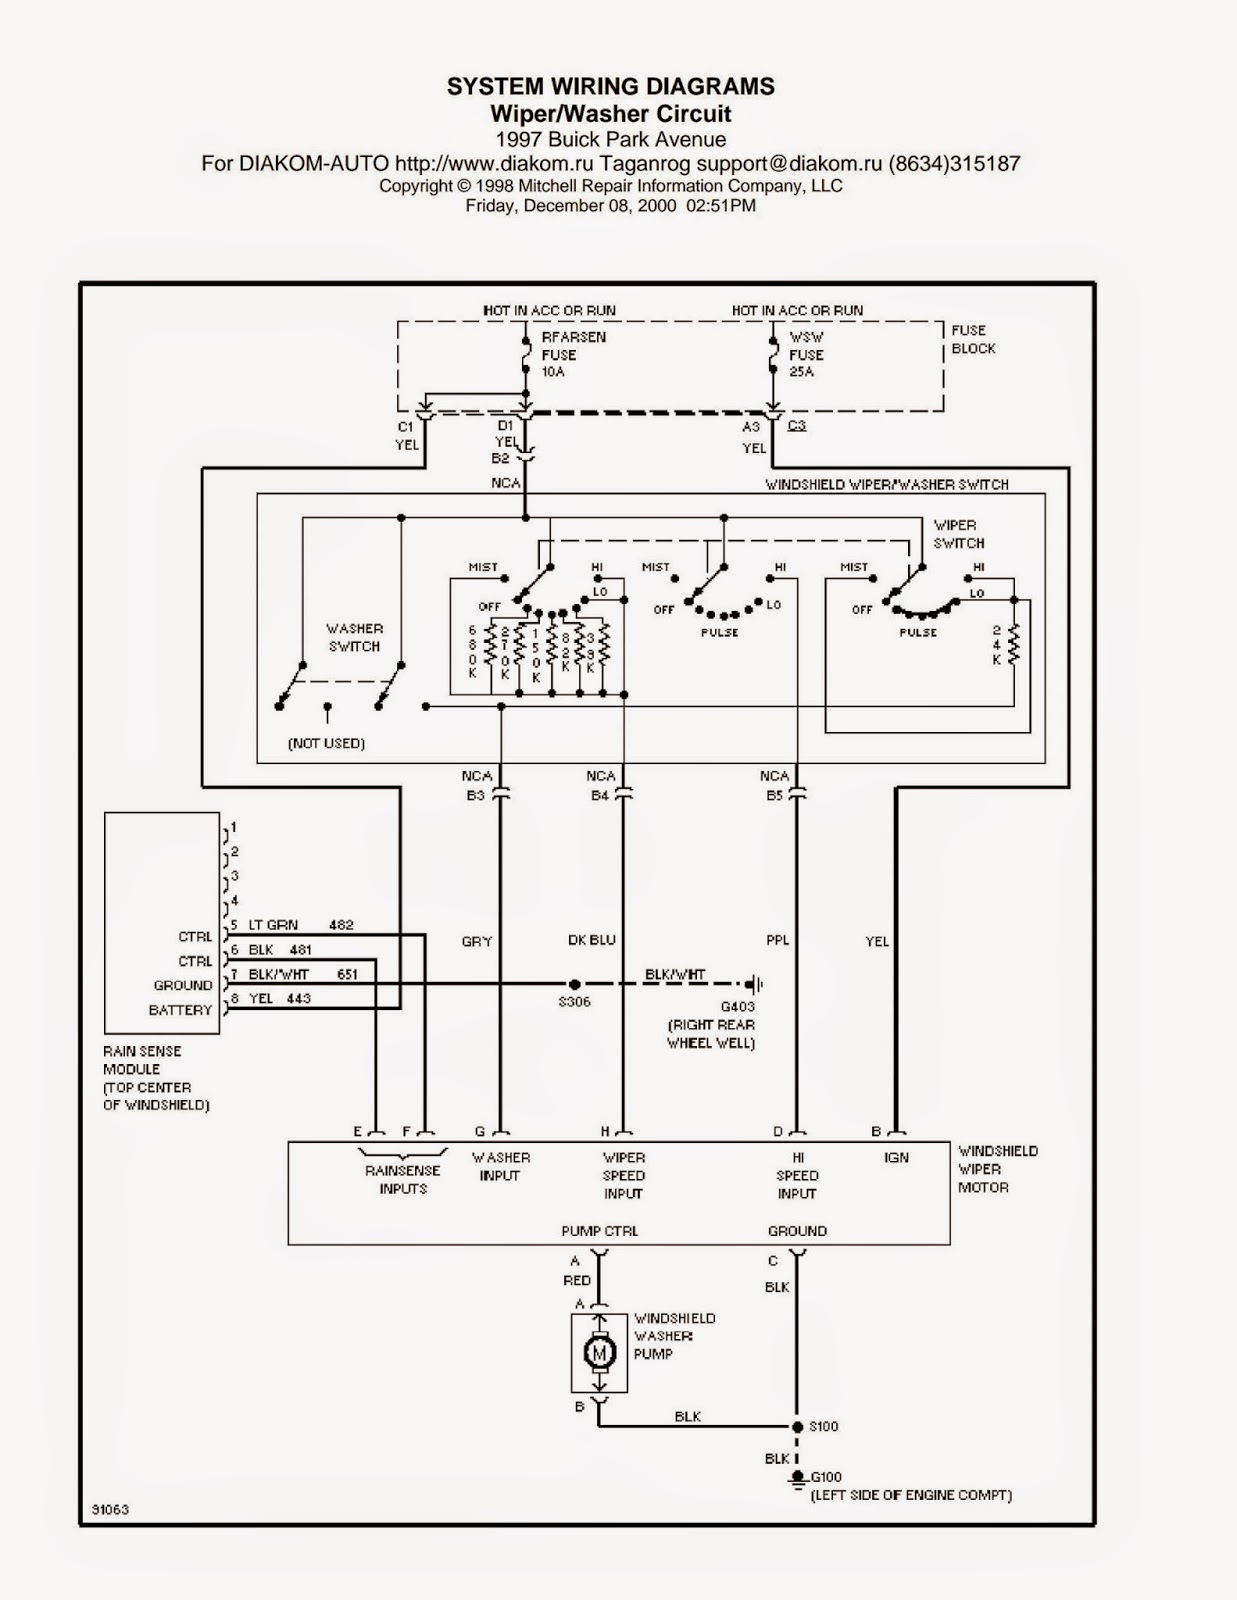 2014 jeep cherokee wiring diagram wiring diagrams and free manual ebooks: 1997 jeep cherokee ... 2014 jeep trailer wiring diagram